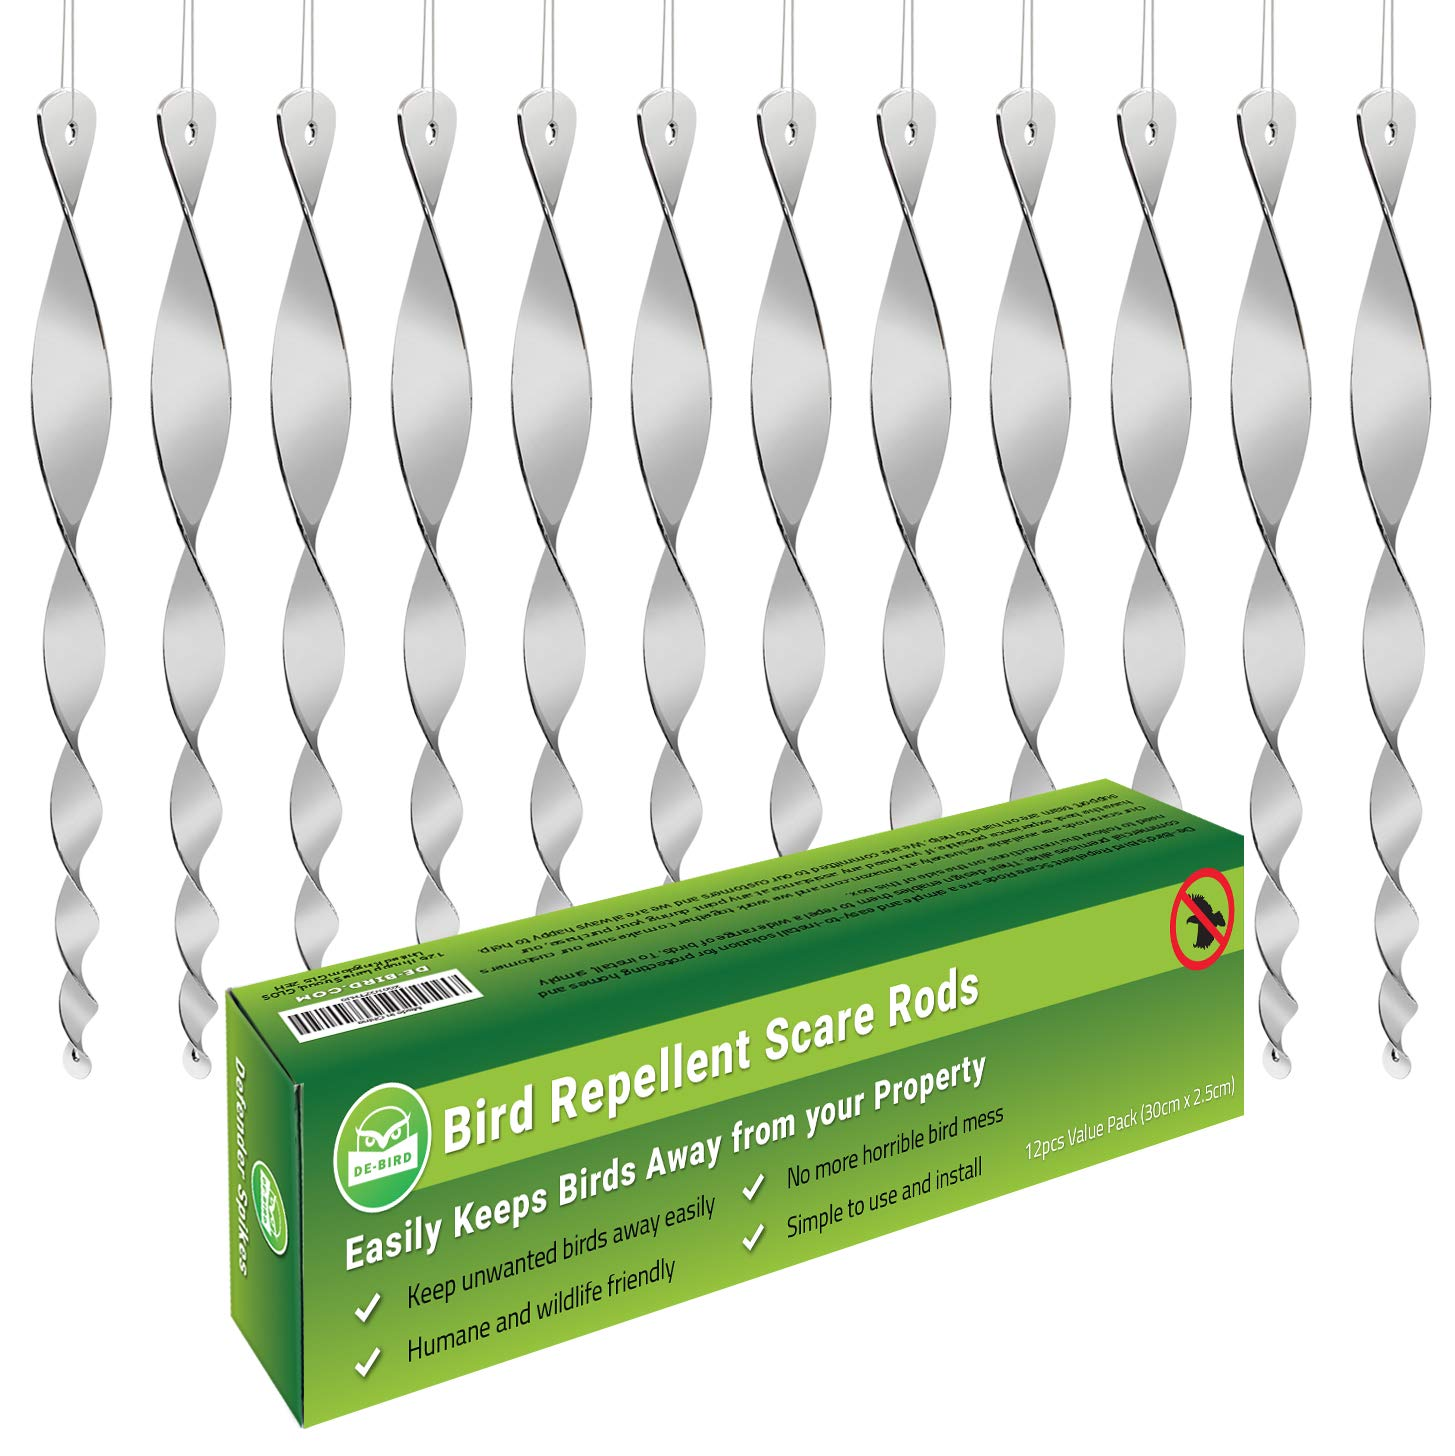 Bird Scare Rods Owl Decoy Bird Repellent [Stop Woodpeckers, Pigeons] Keep Away Pests with Outdoor Repeller Device in Garden or Yard [Scares Many Animals] Works with Tape, Spikes, Ultrasonic and Spray